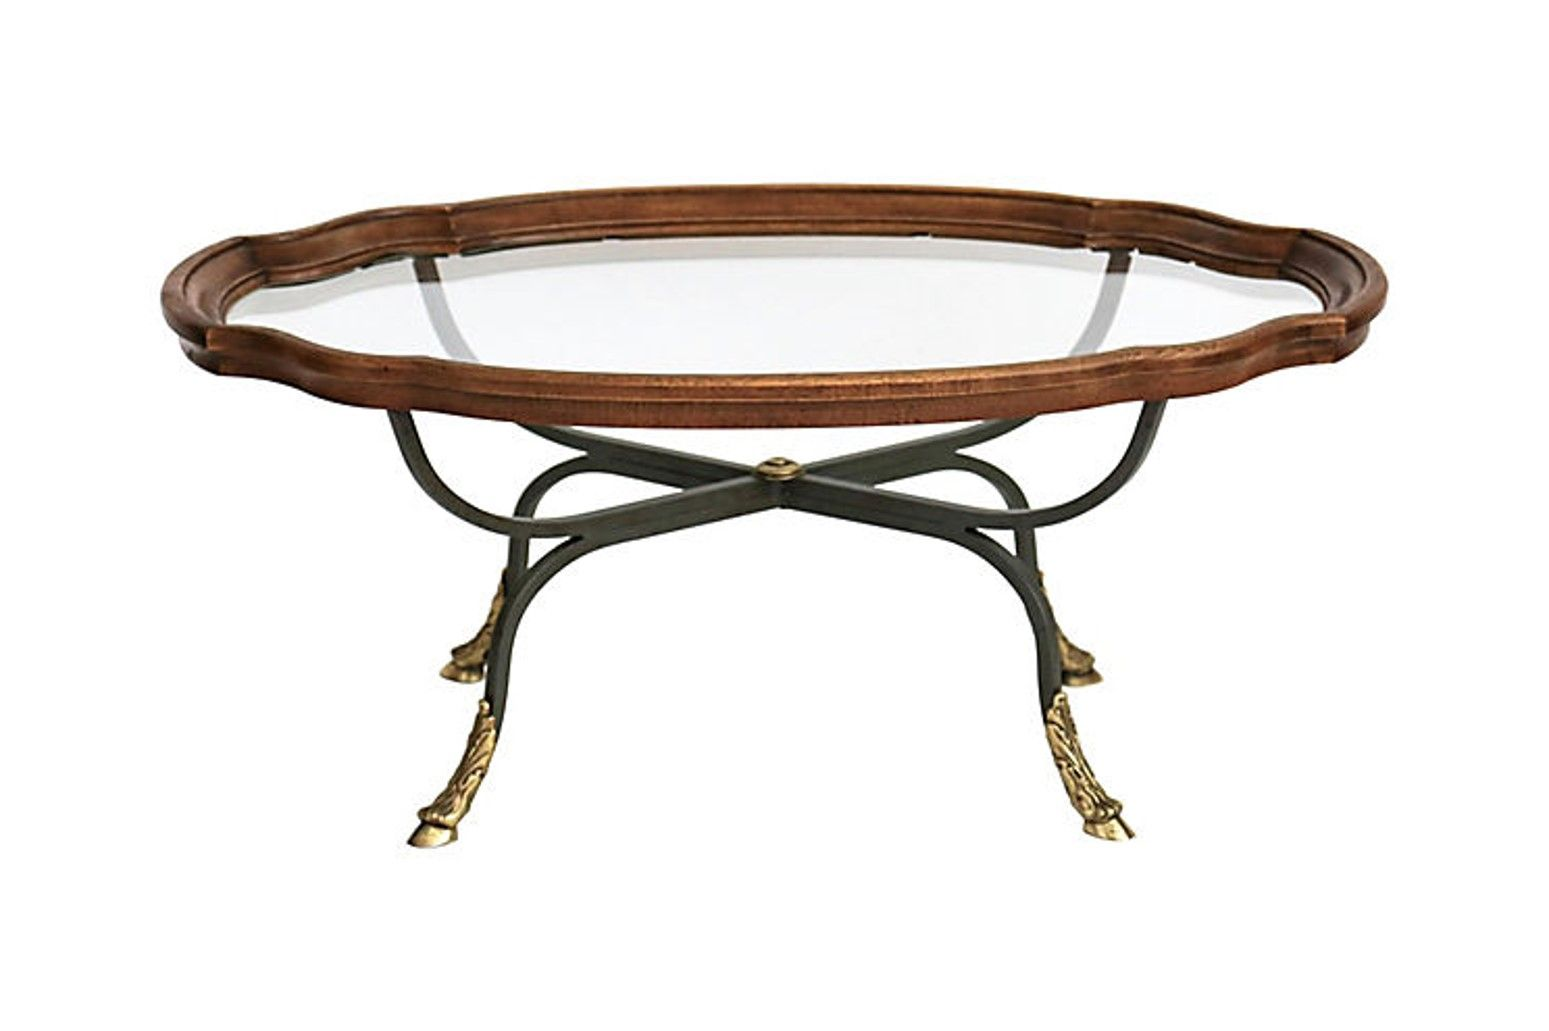 Oval Tray Style Coffee Table By Drexel Tray Styling Glass Top